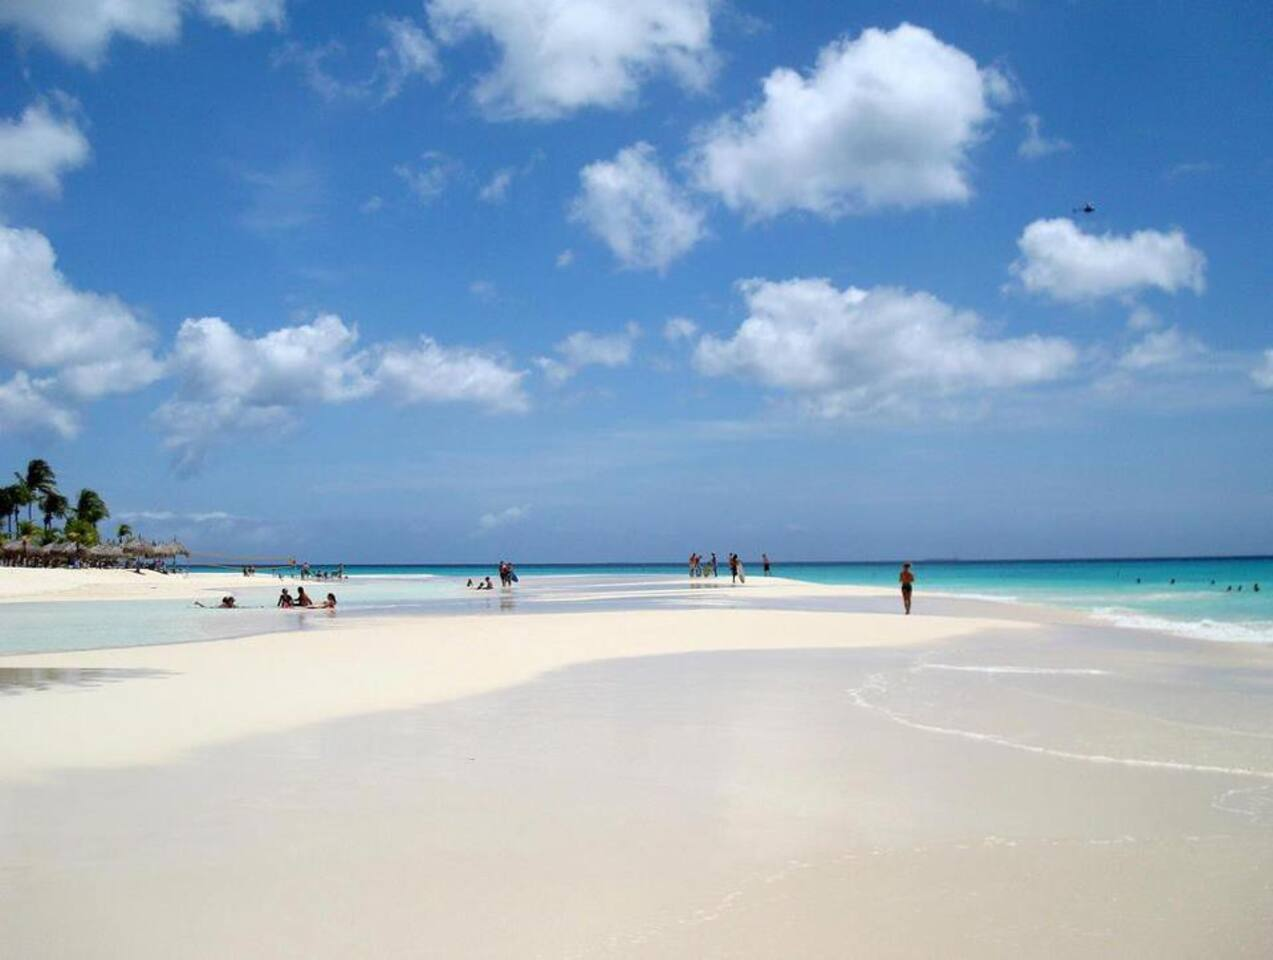 Eagle Beach!... Rated best beach in the caribbean (USA Today).  Rated #2 beach in caribbean by TripAdvisor.  Not to shabby...